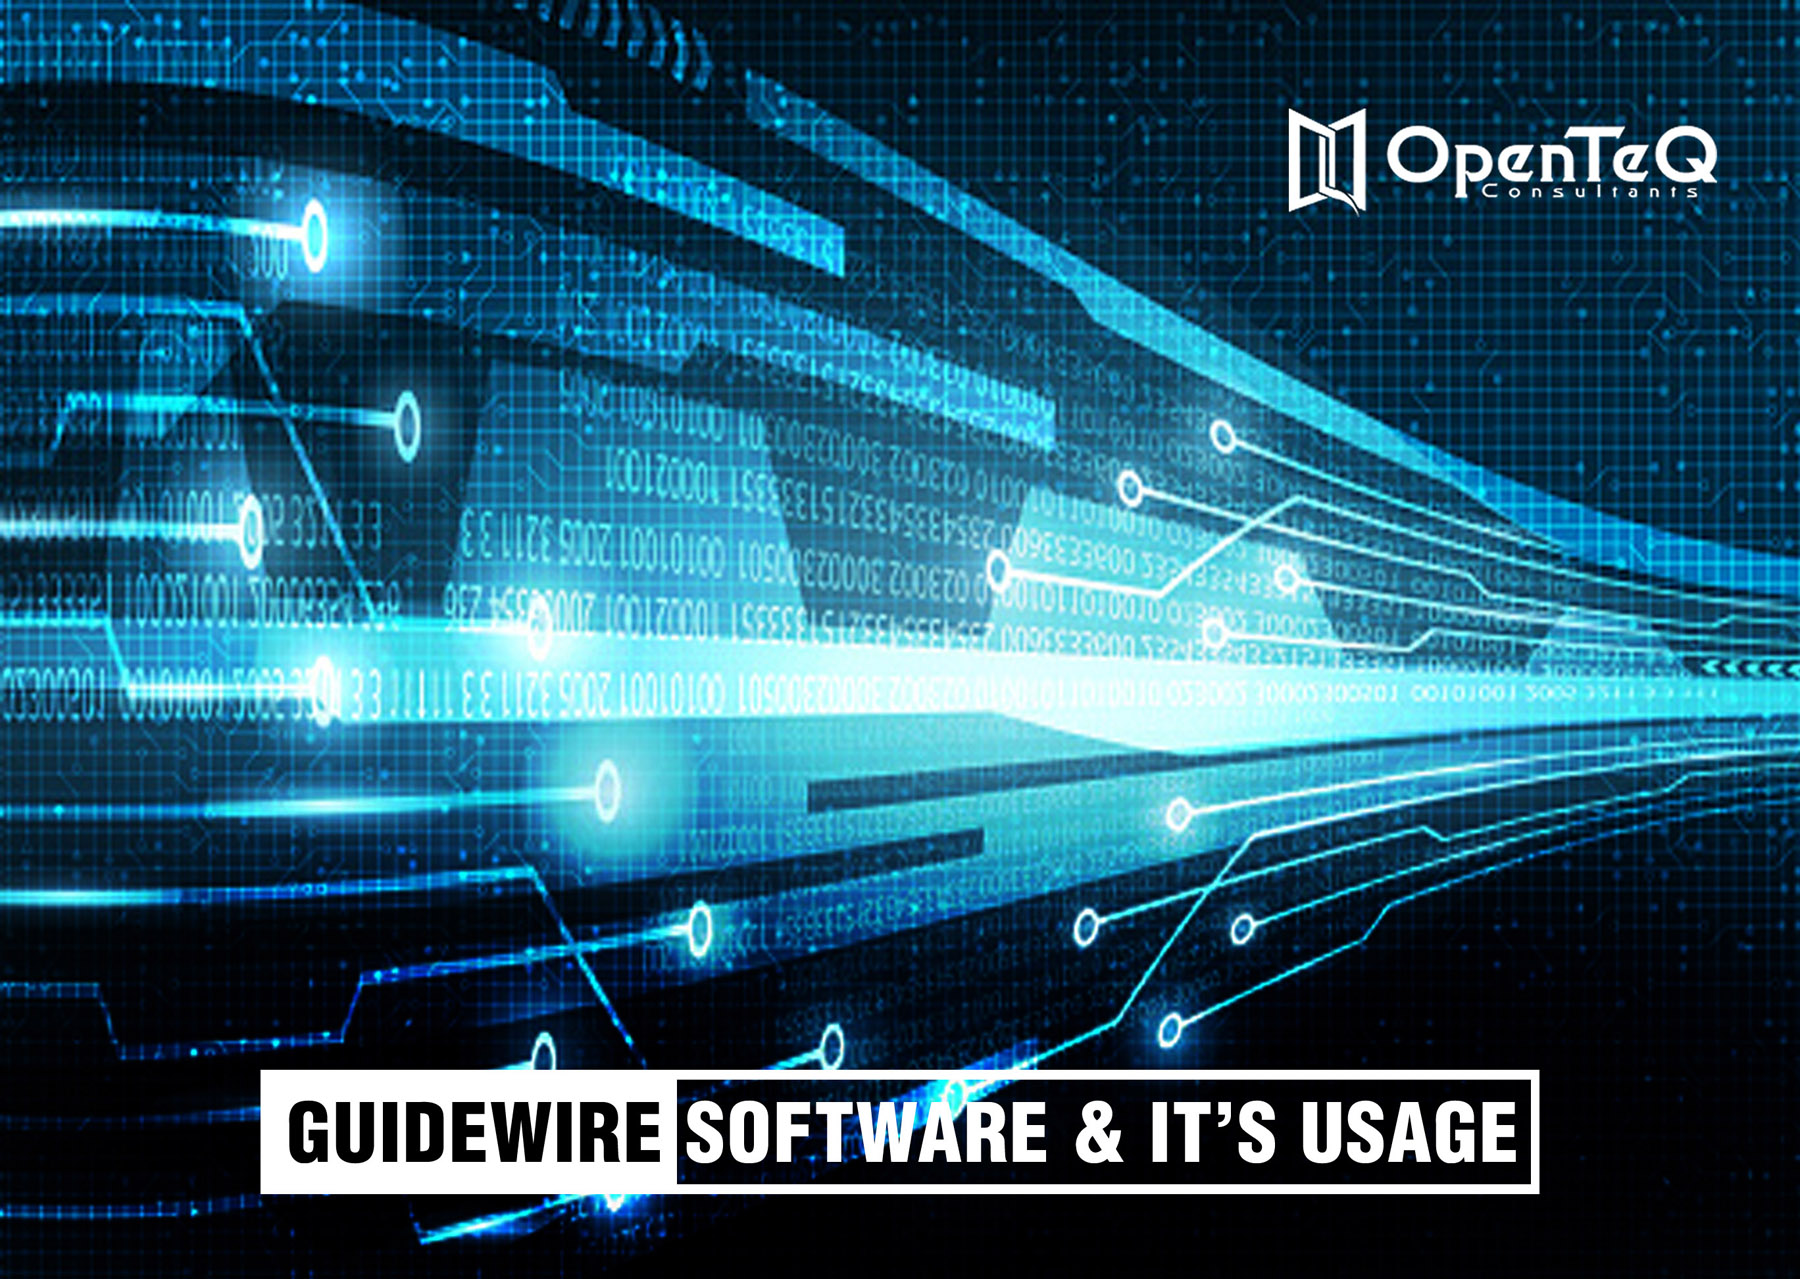 guidewire software and its usage